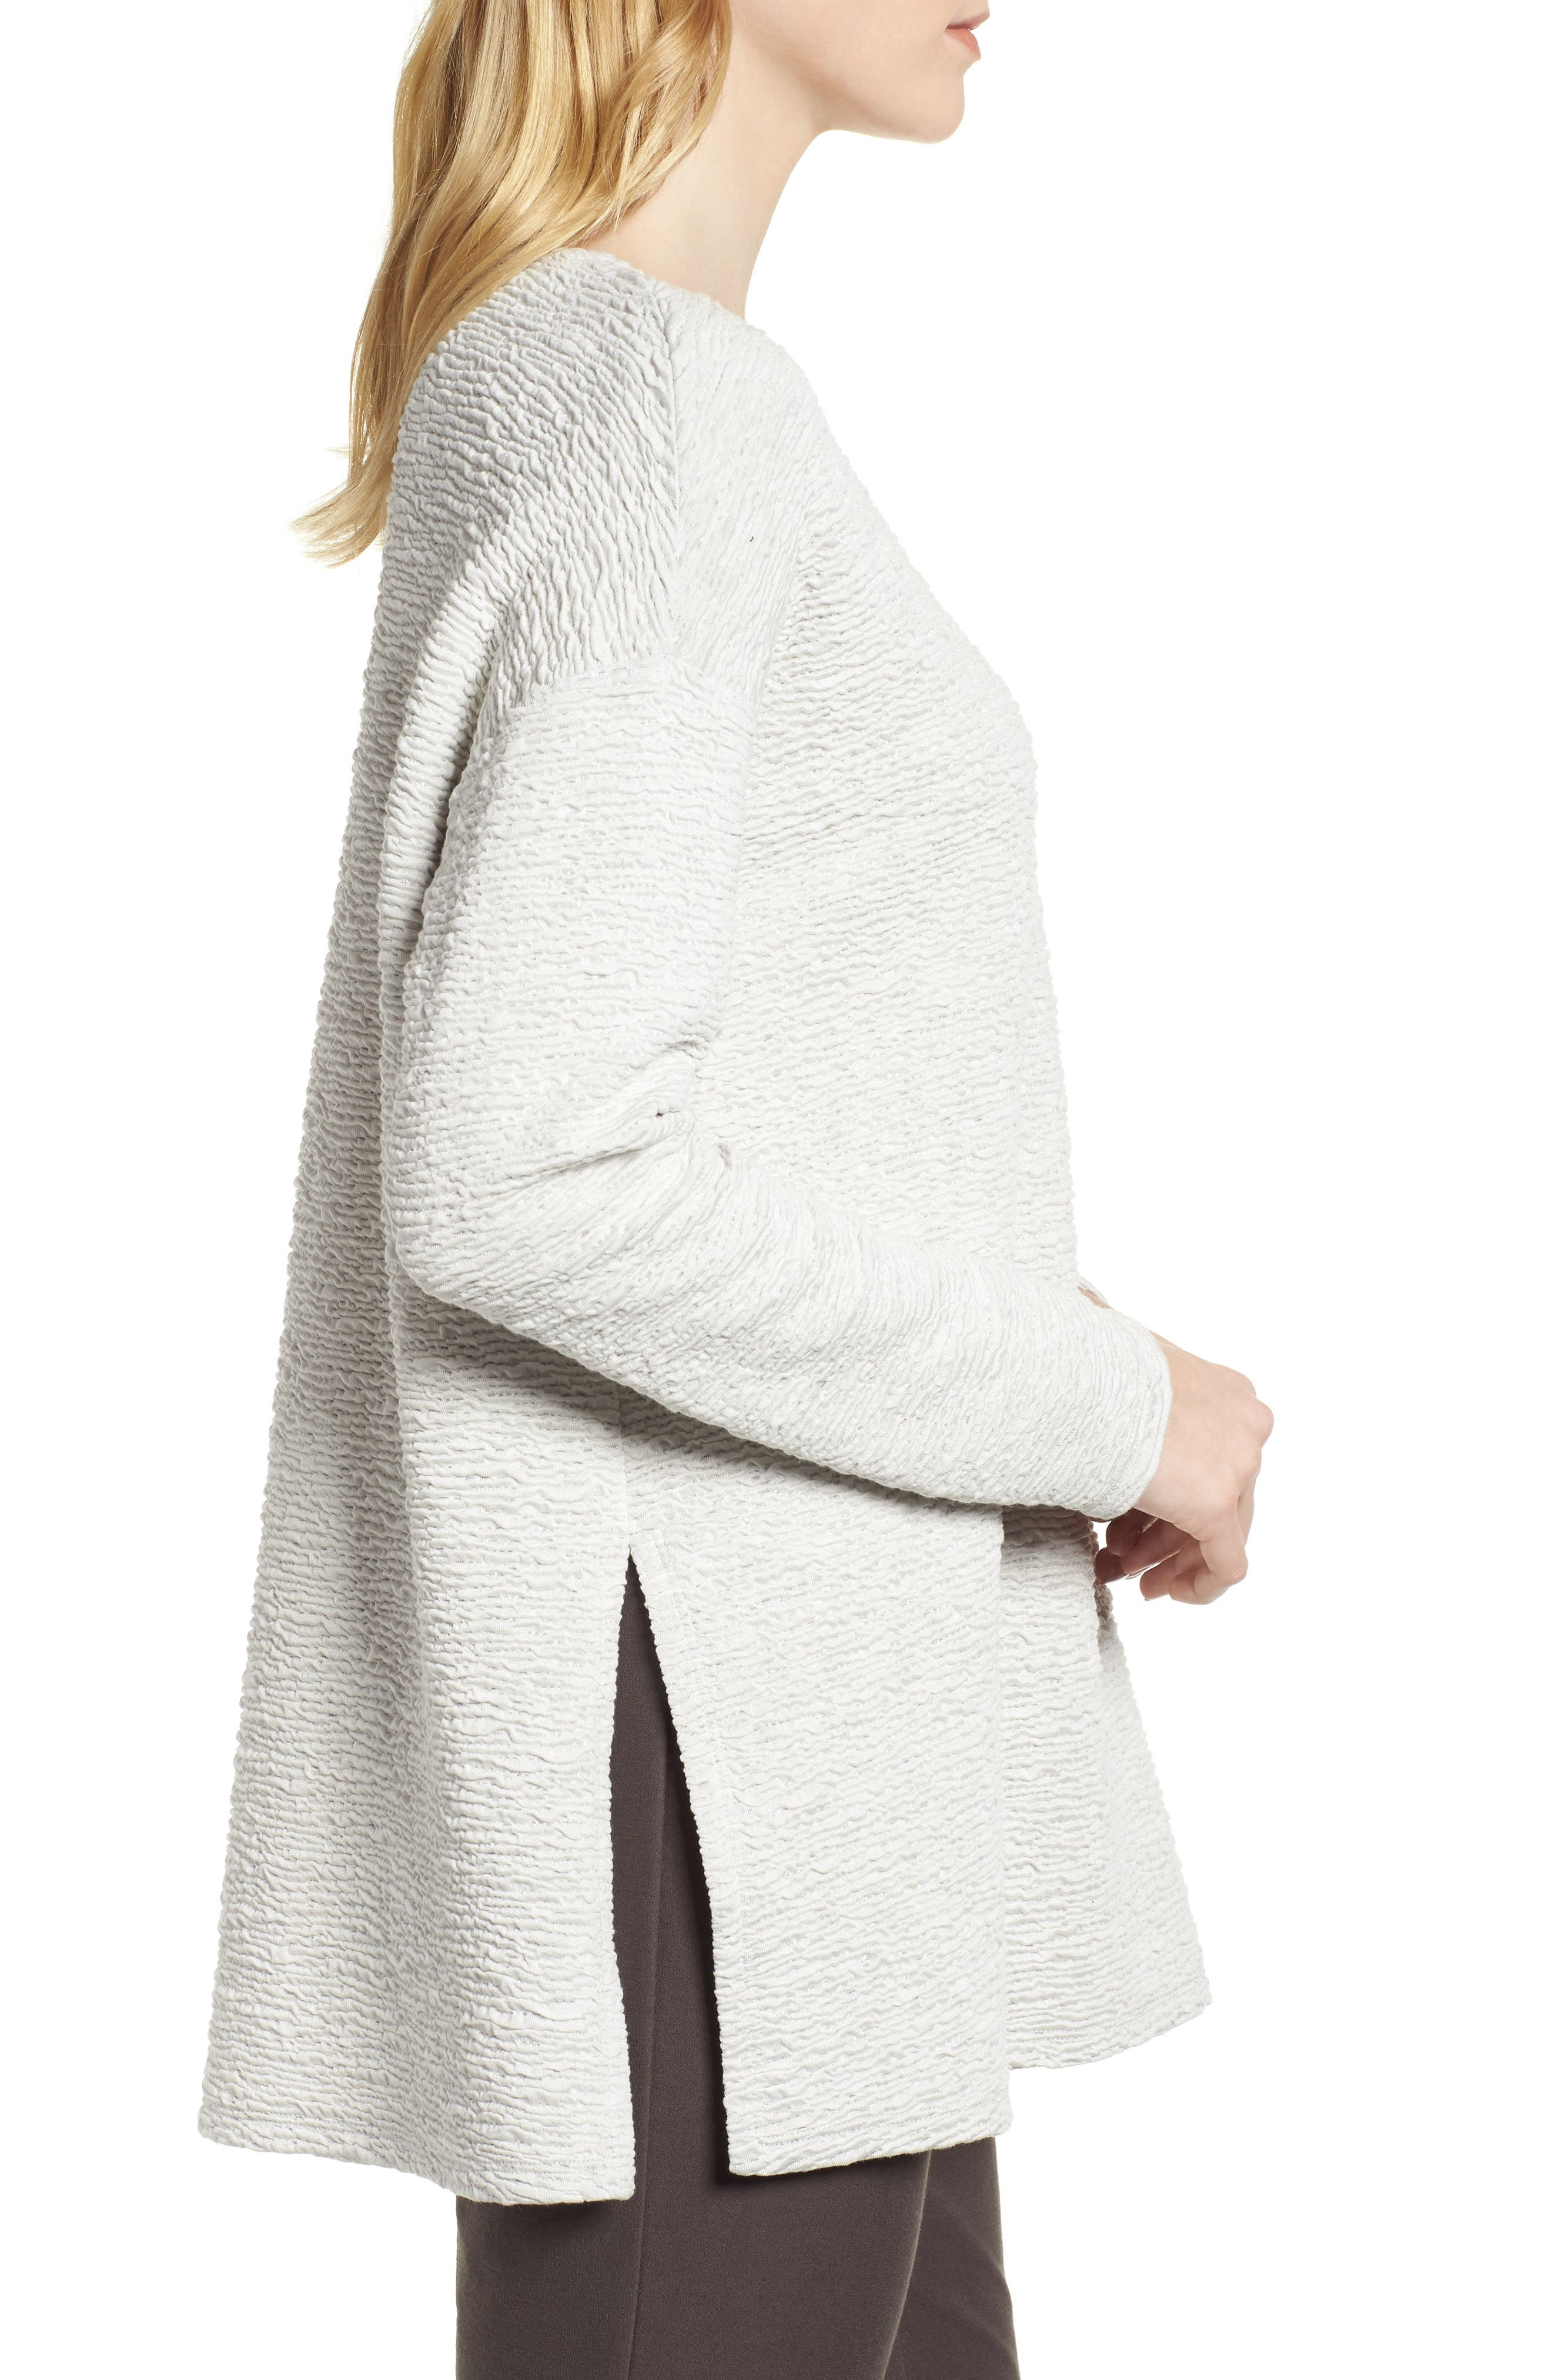 Textured Tencel<sup>®</sup> Lyocell Blend Top,                             Alternate thumbnail 3, color,                             100